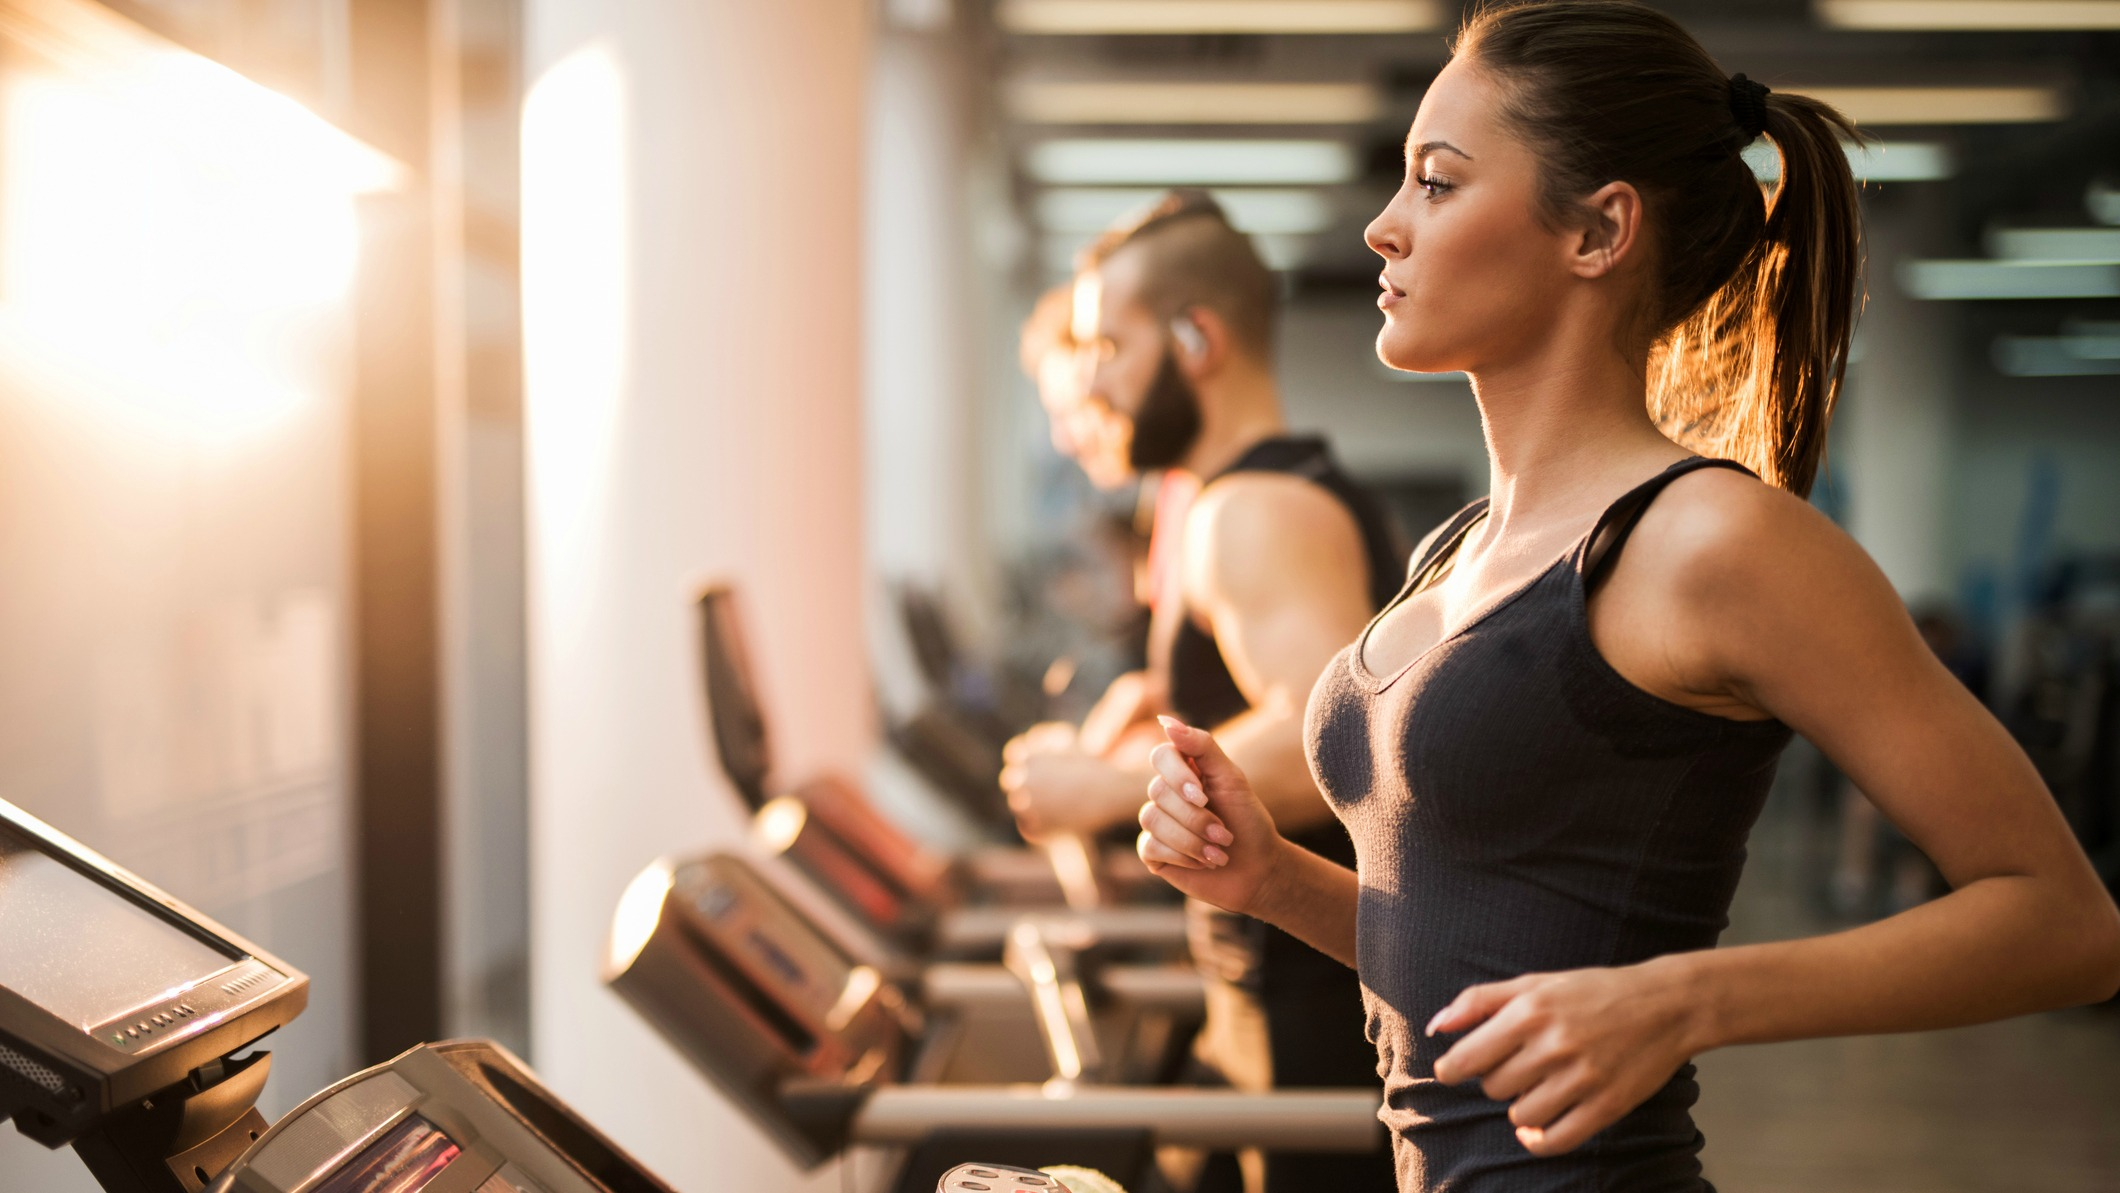 25 Fitness Quotes That'll Get Your Butt to the Gym